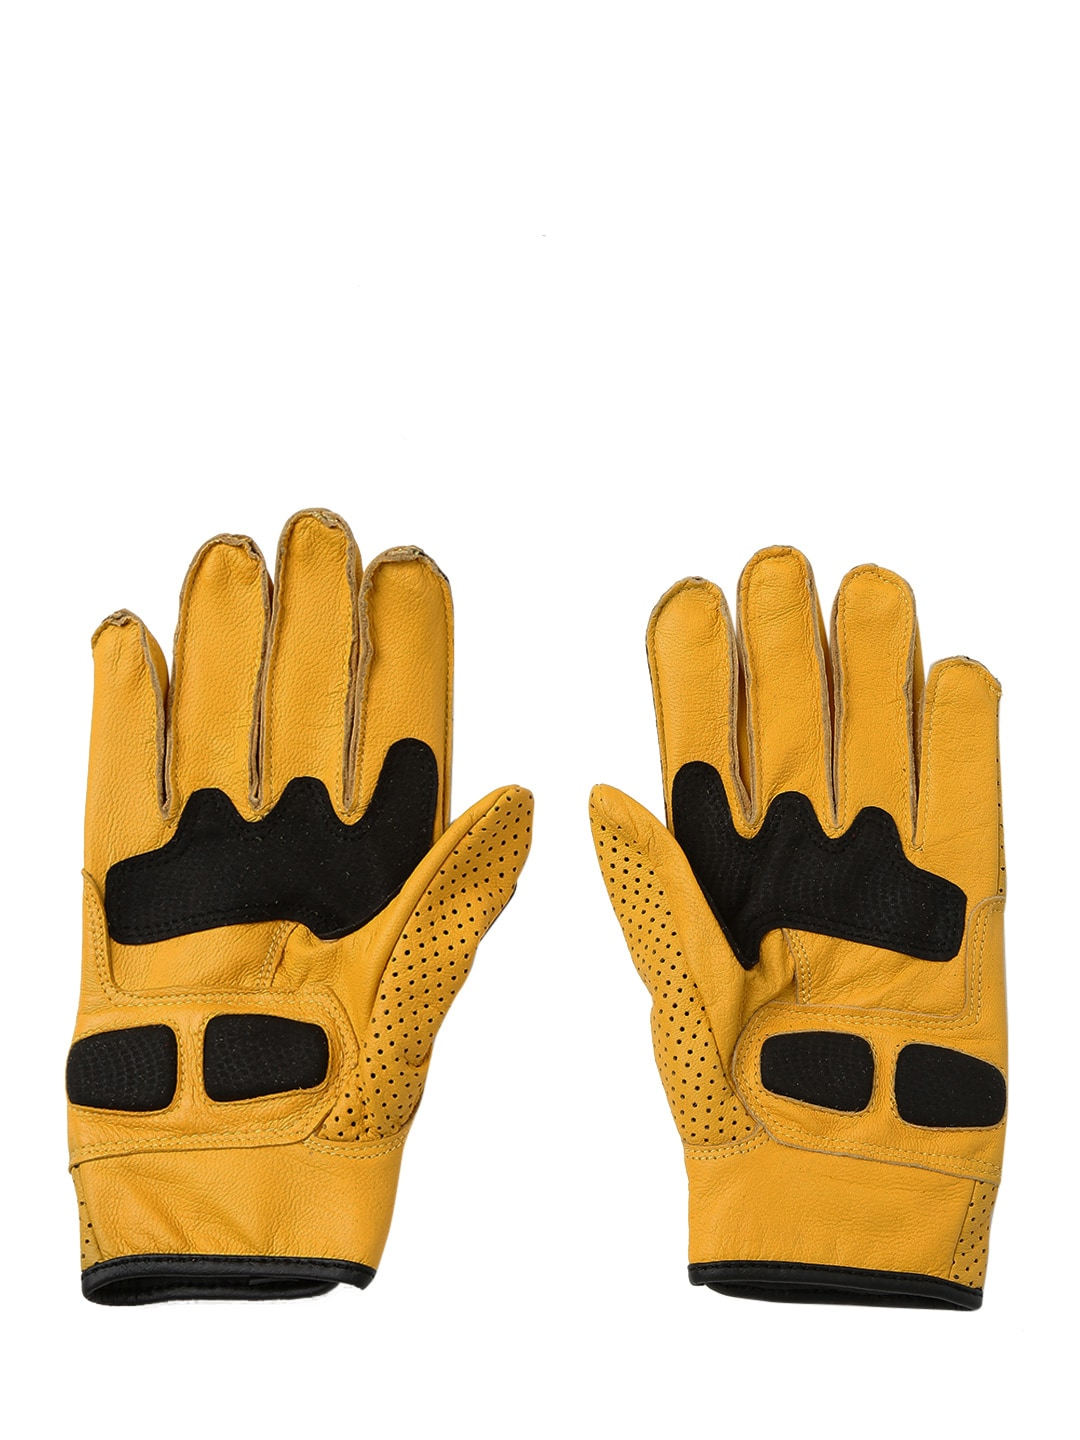 Buy leather hand gloves online india - Buy Leather Hand Gloves Online India 58